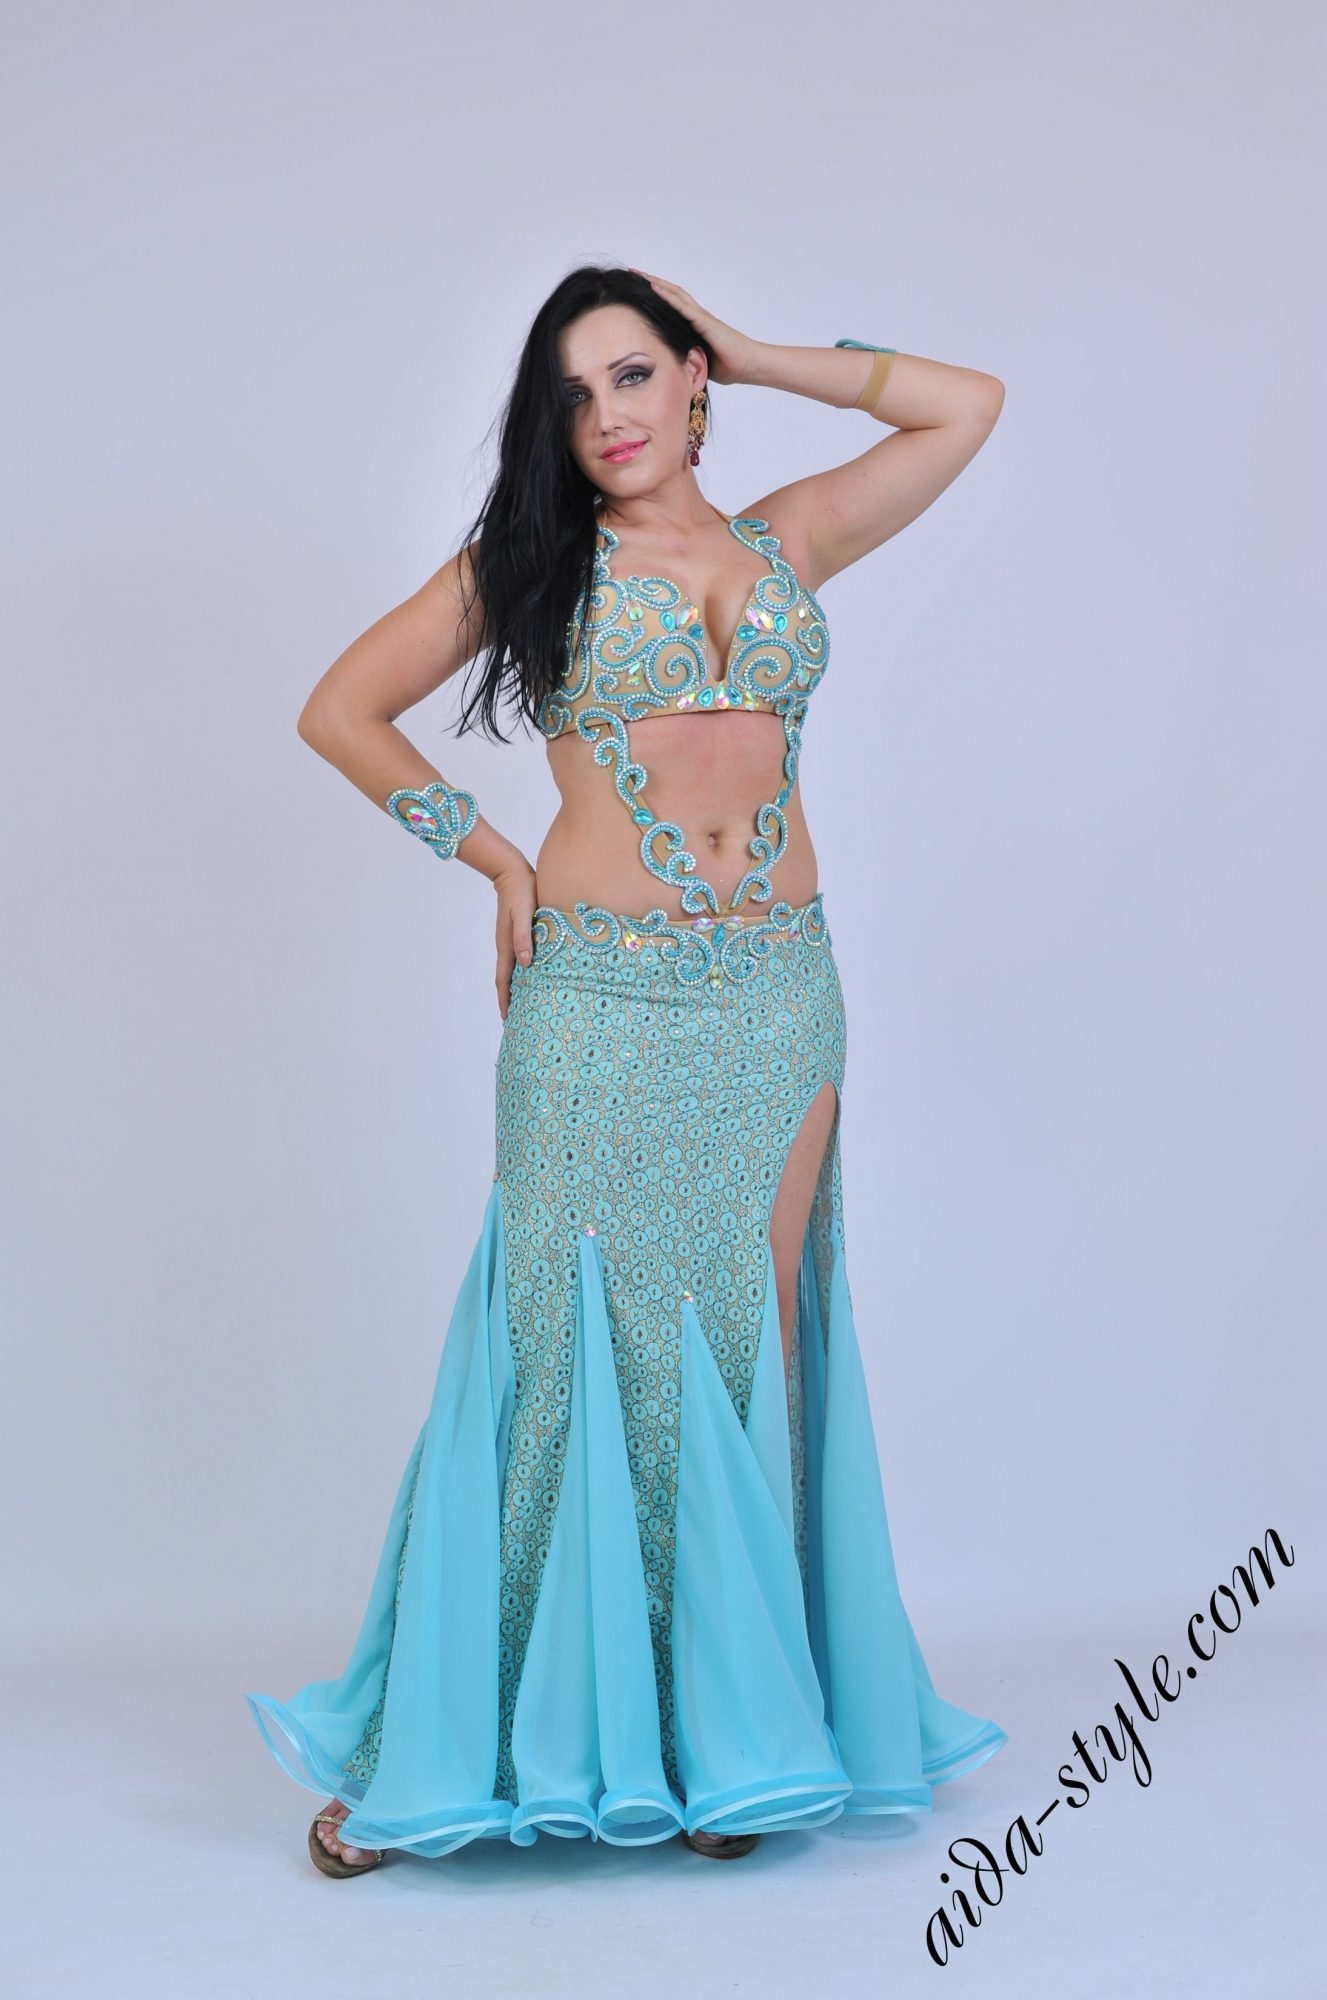 Light blue belly dancer costume with skirt with opening at left side